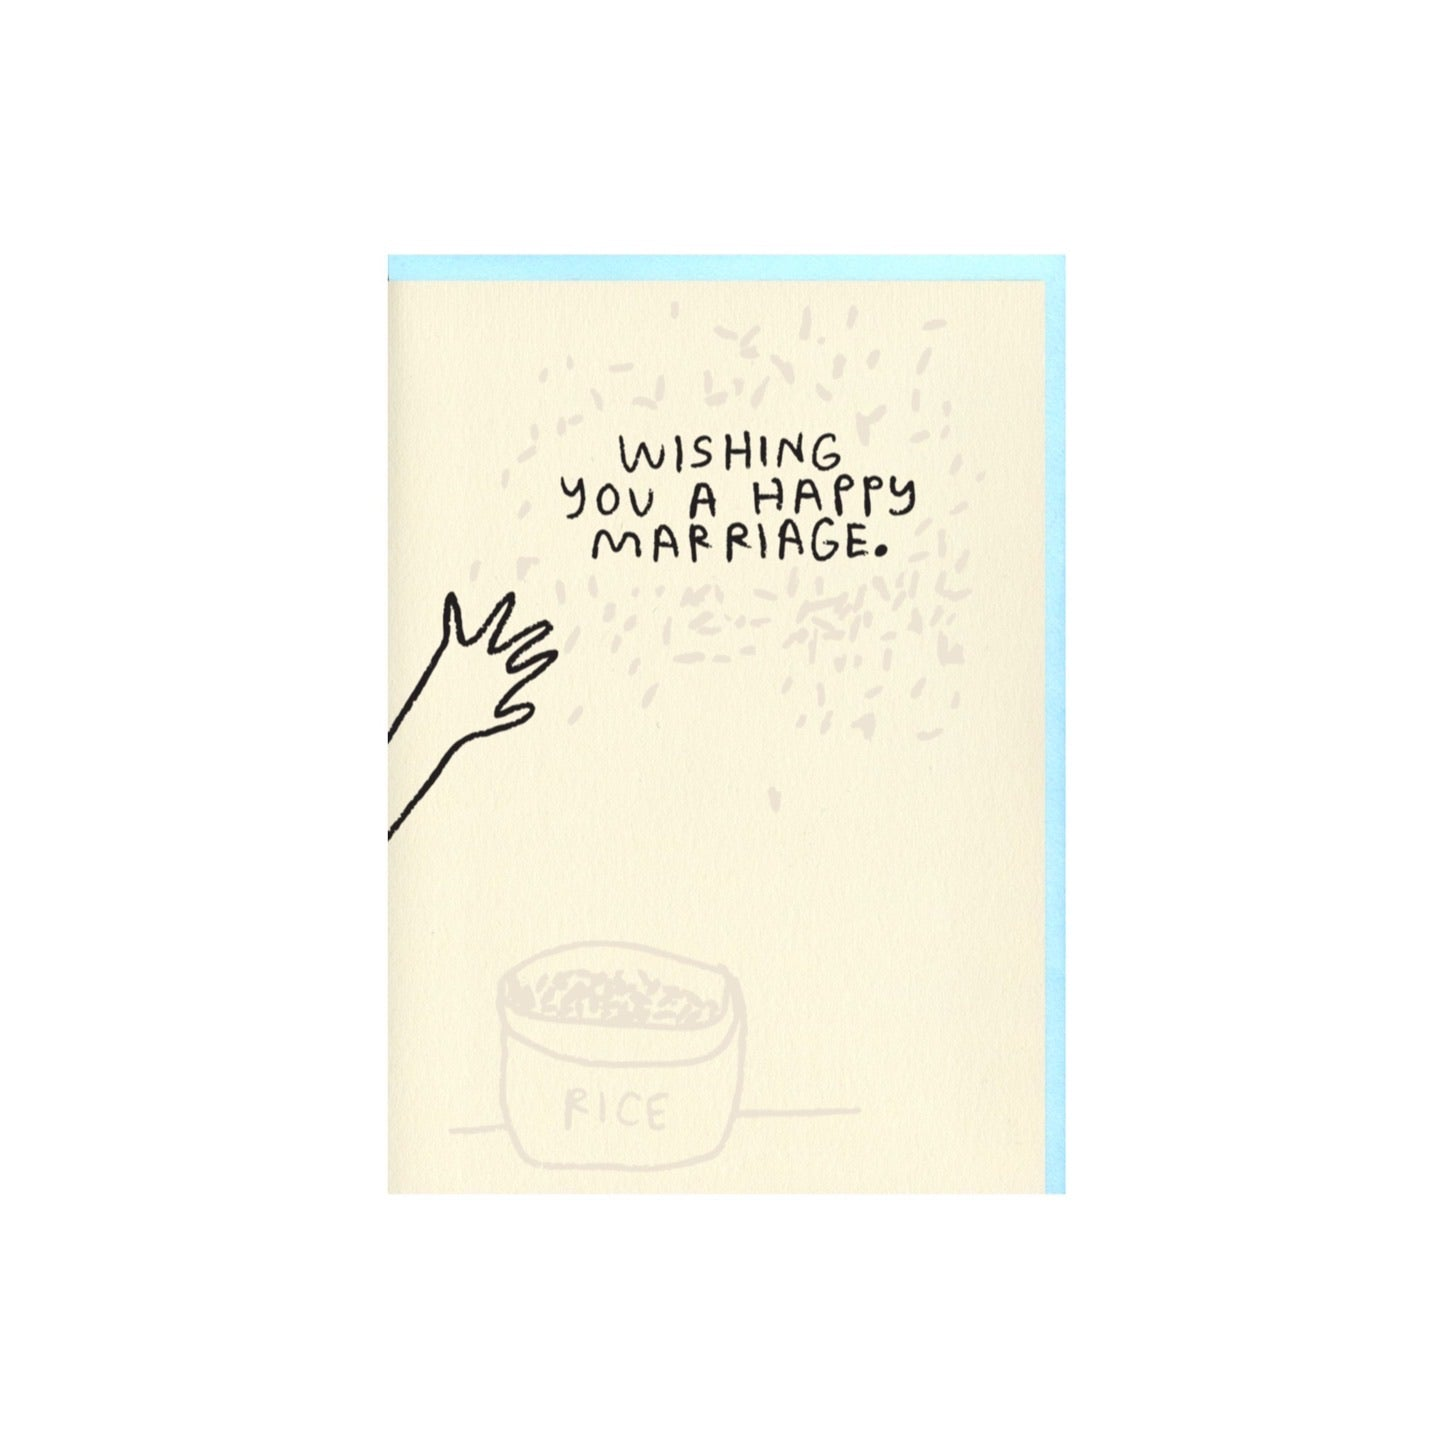 RICE HAPPY MARRIAGE CARD